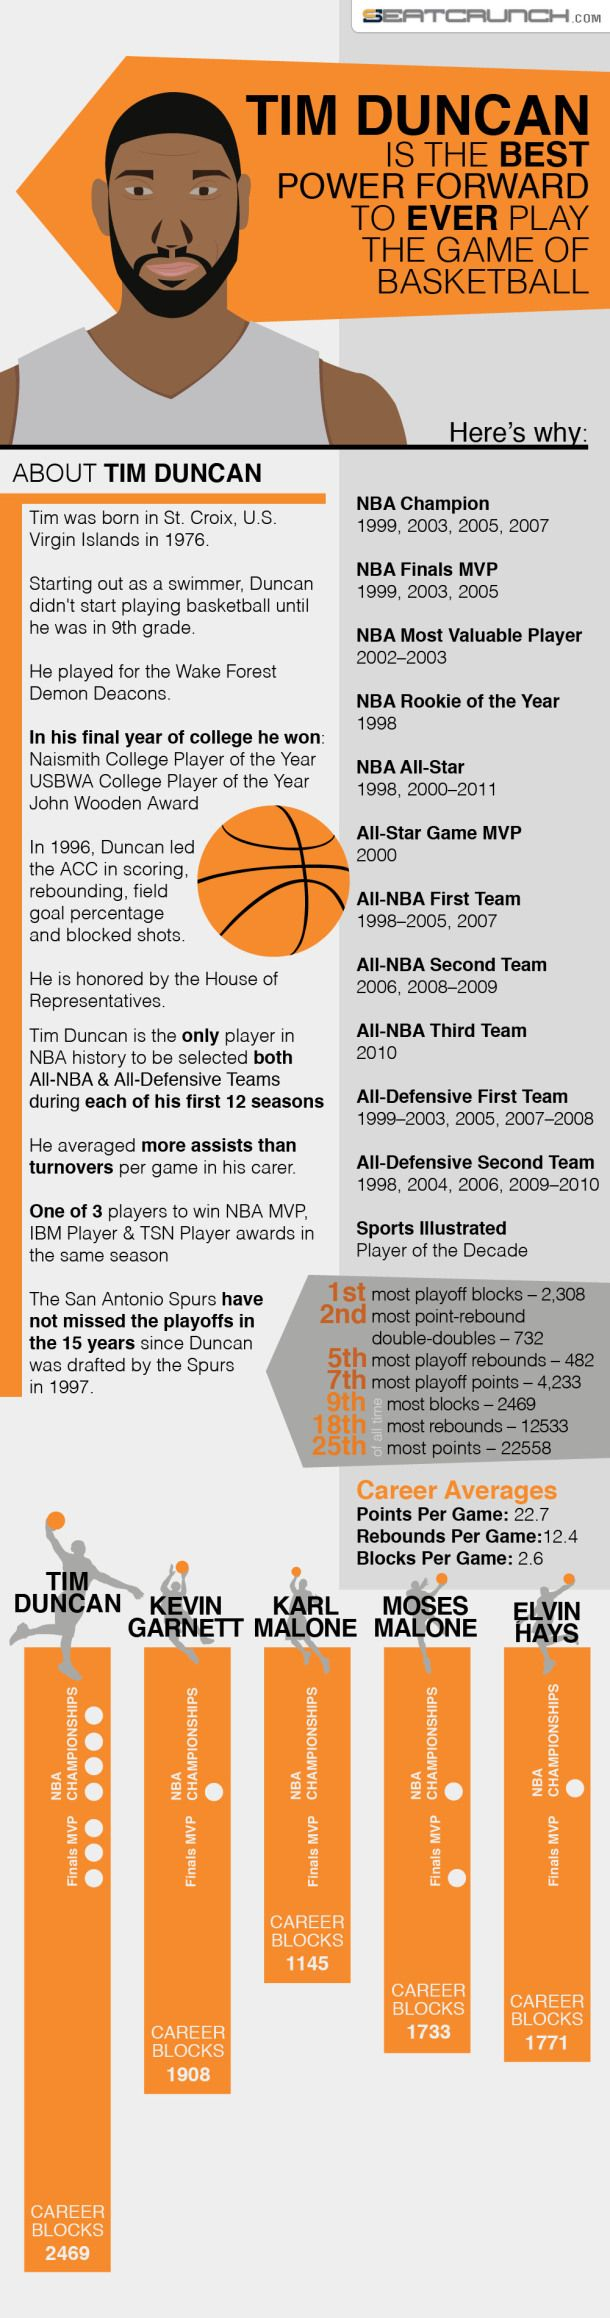 Tim Duncan Is The Best Power Forward To Ever Play The Game Of Basketball[INFOGRAPHIC] #TimDuncan #basketball